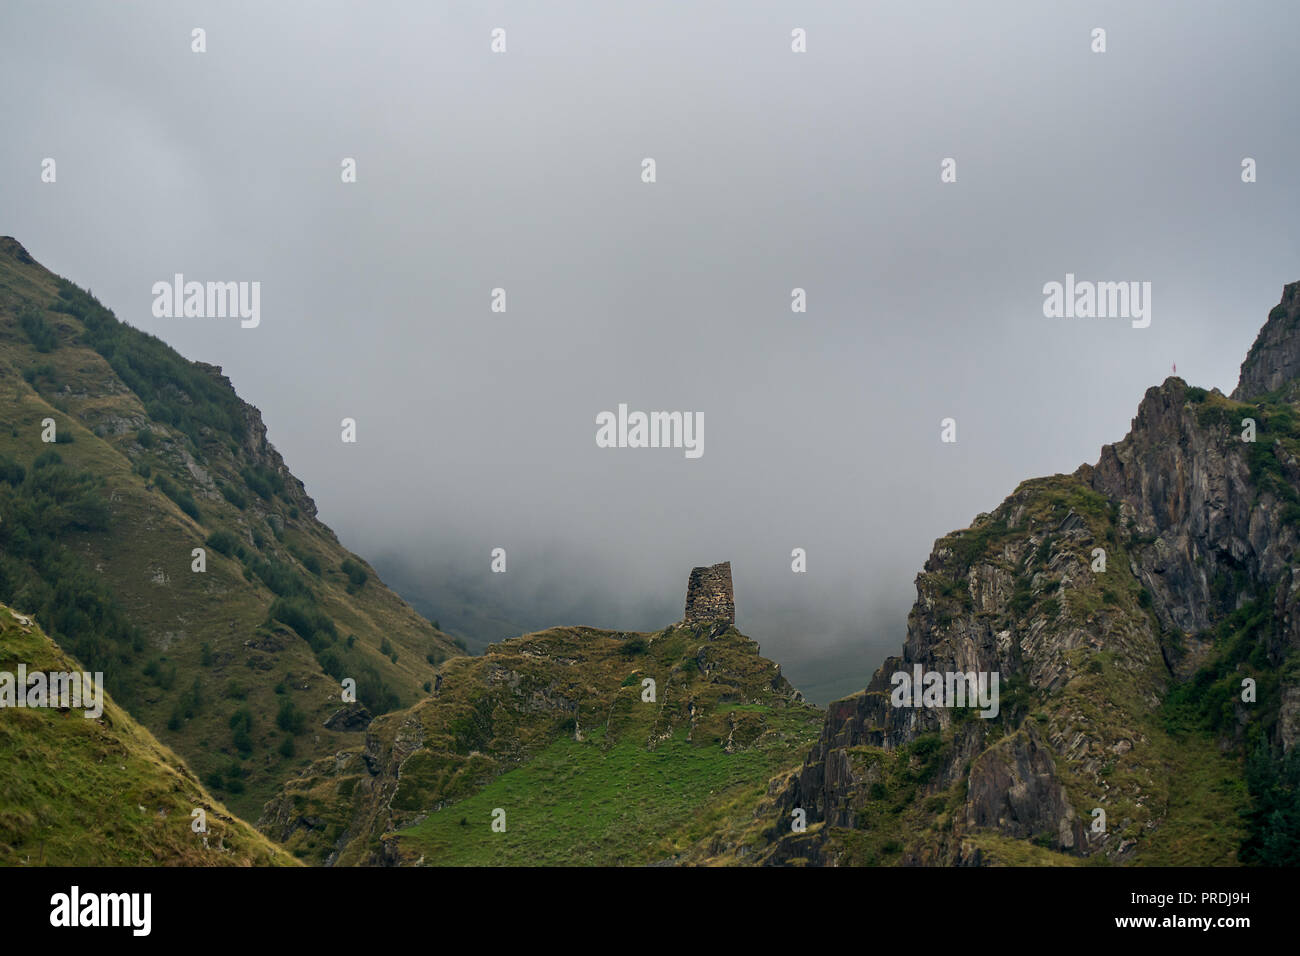 A lone stone tower shelter in ruins stands on top of a rocky hill surrounded by bigger rocky mountains and low cloudy mist. - Stock Image